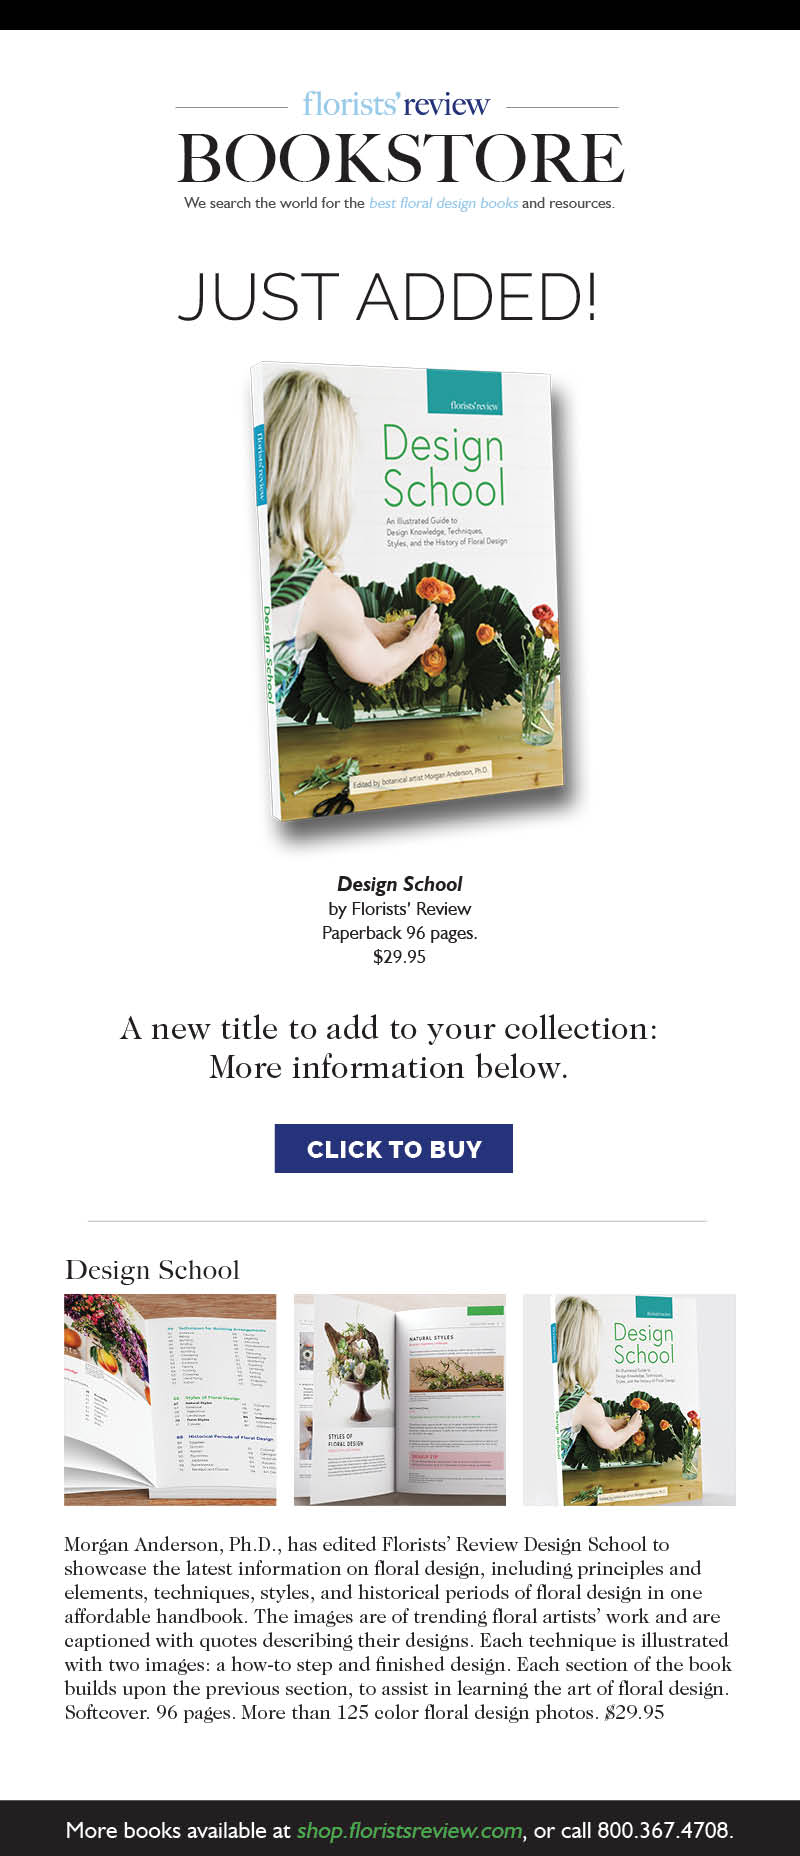 Email Campaign for  Florists' Review's  Design School, 2018